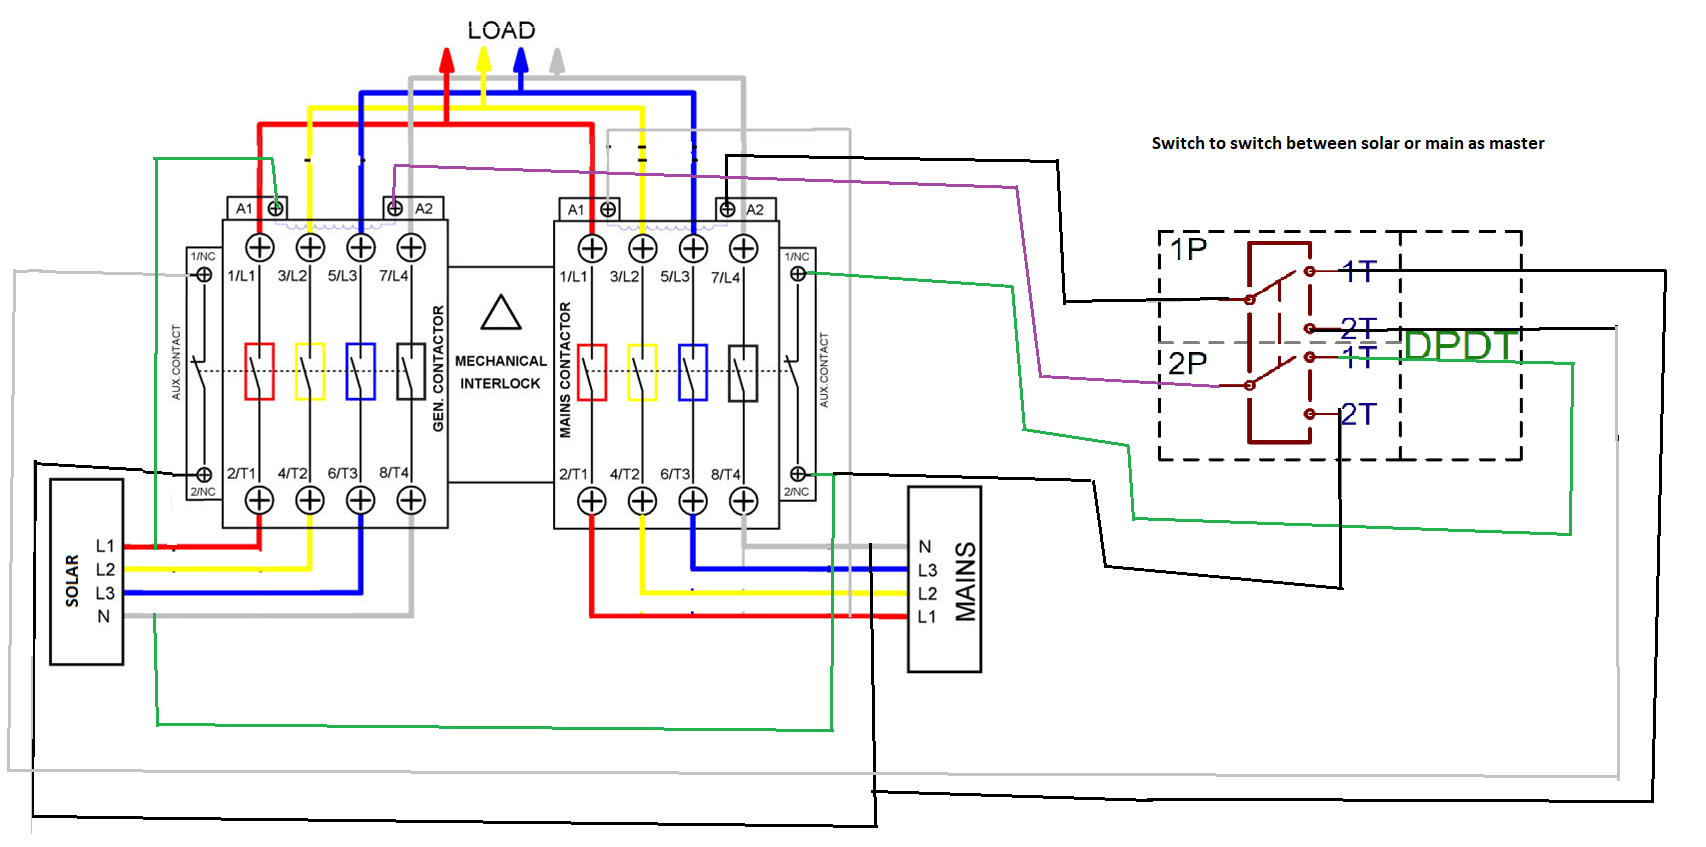 automatic transfer switch wiring diagram sony xplod wire between solar generator